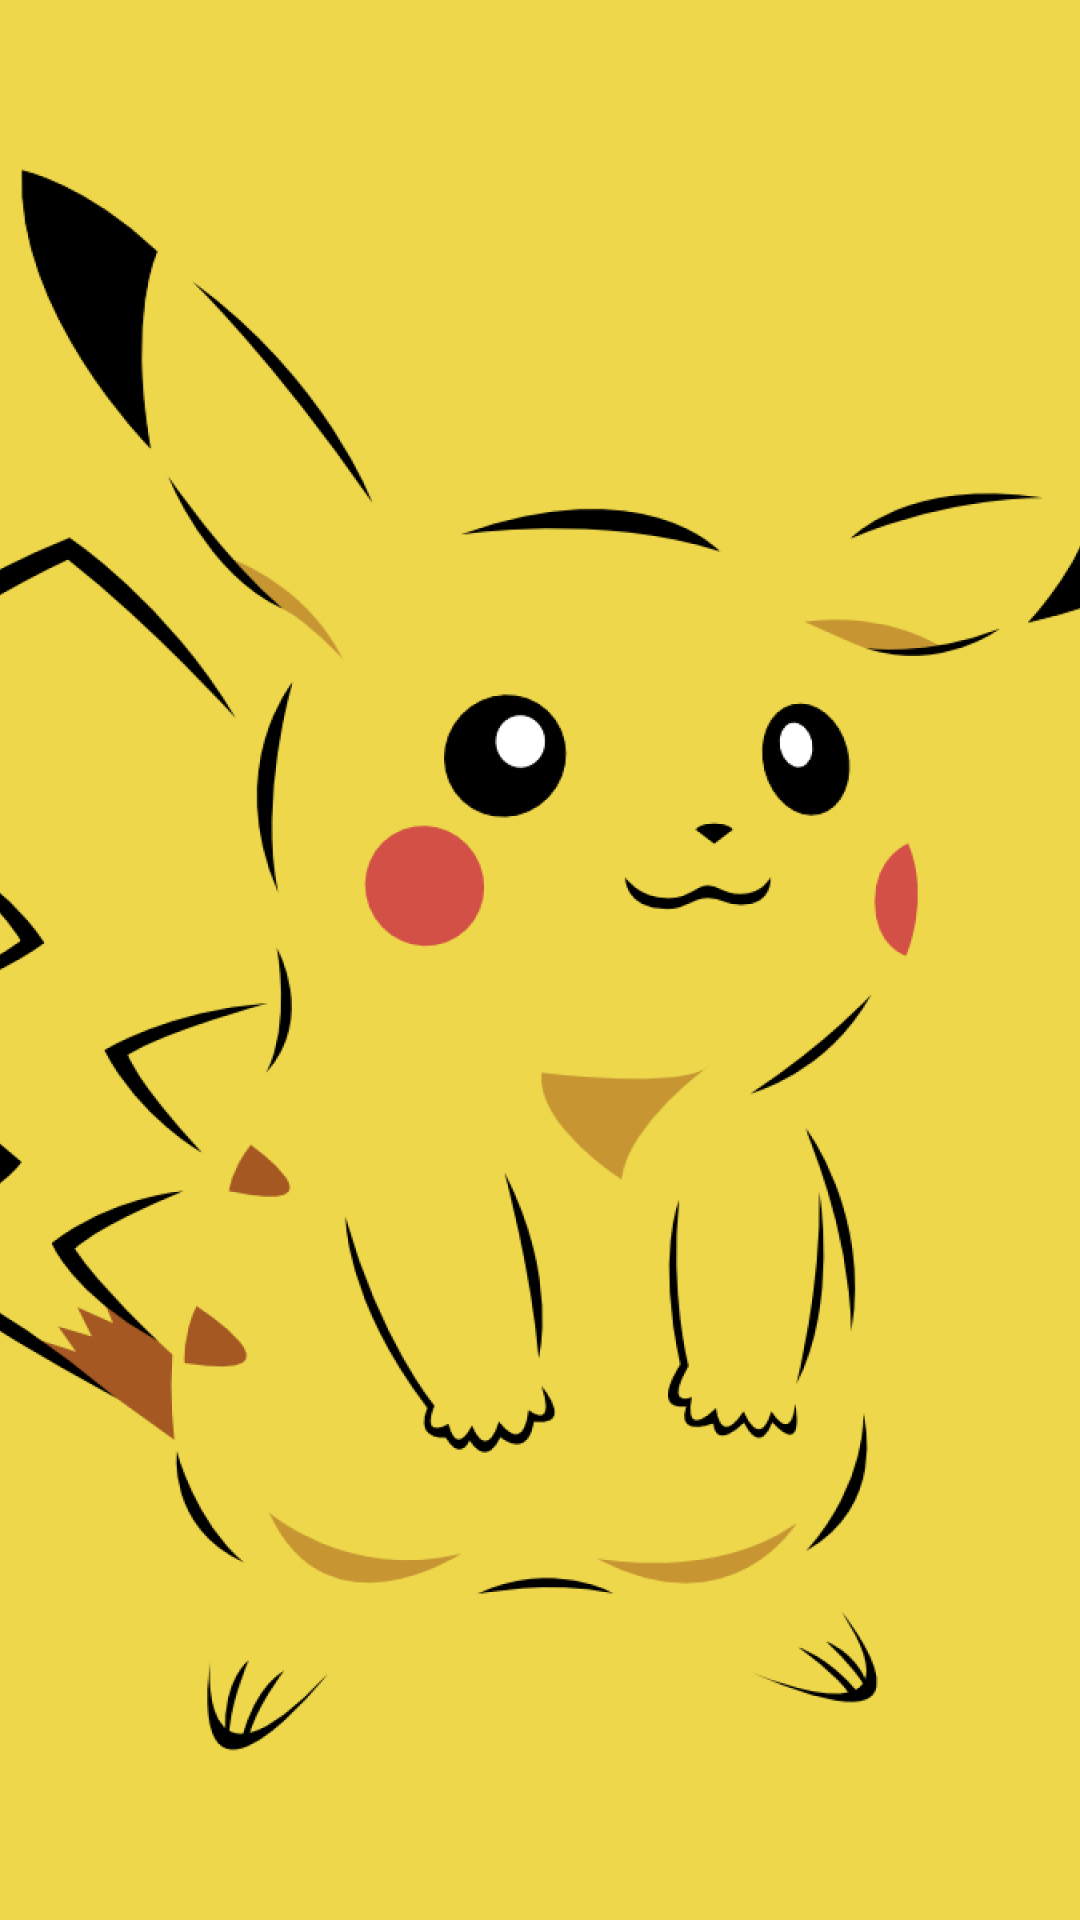 pikachu wallpaper iphone  Pikachu HD Wallpapers for iPhone 7 | Wallpapers.Pictures